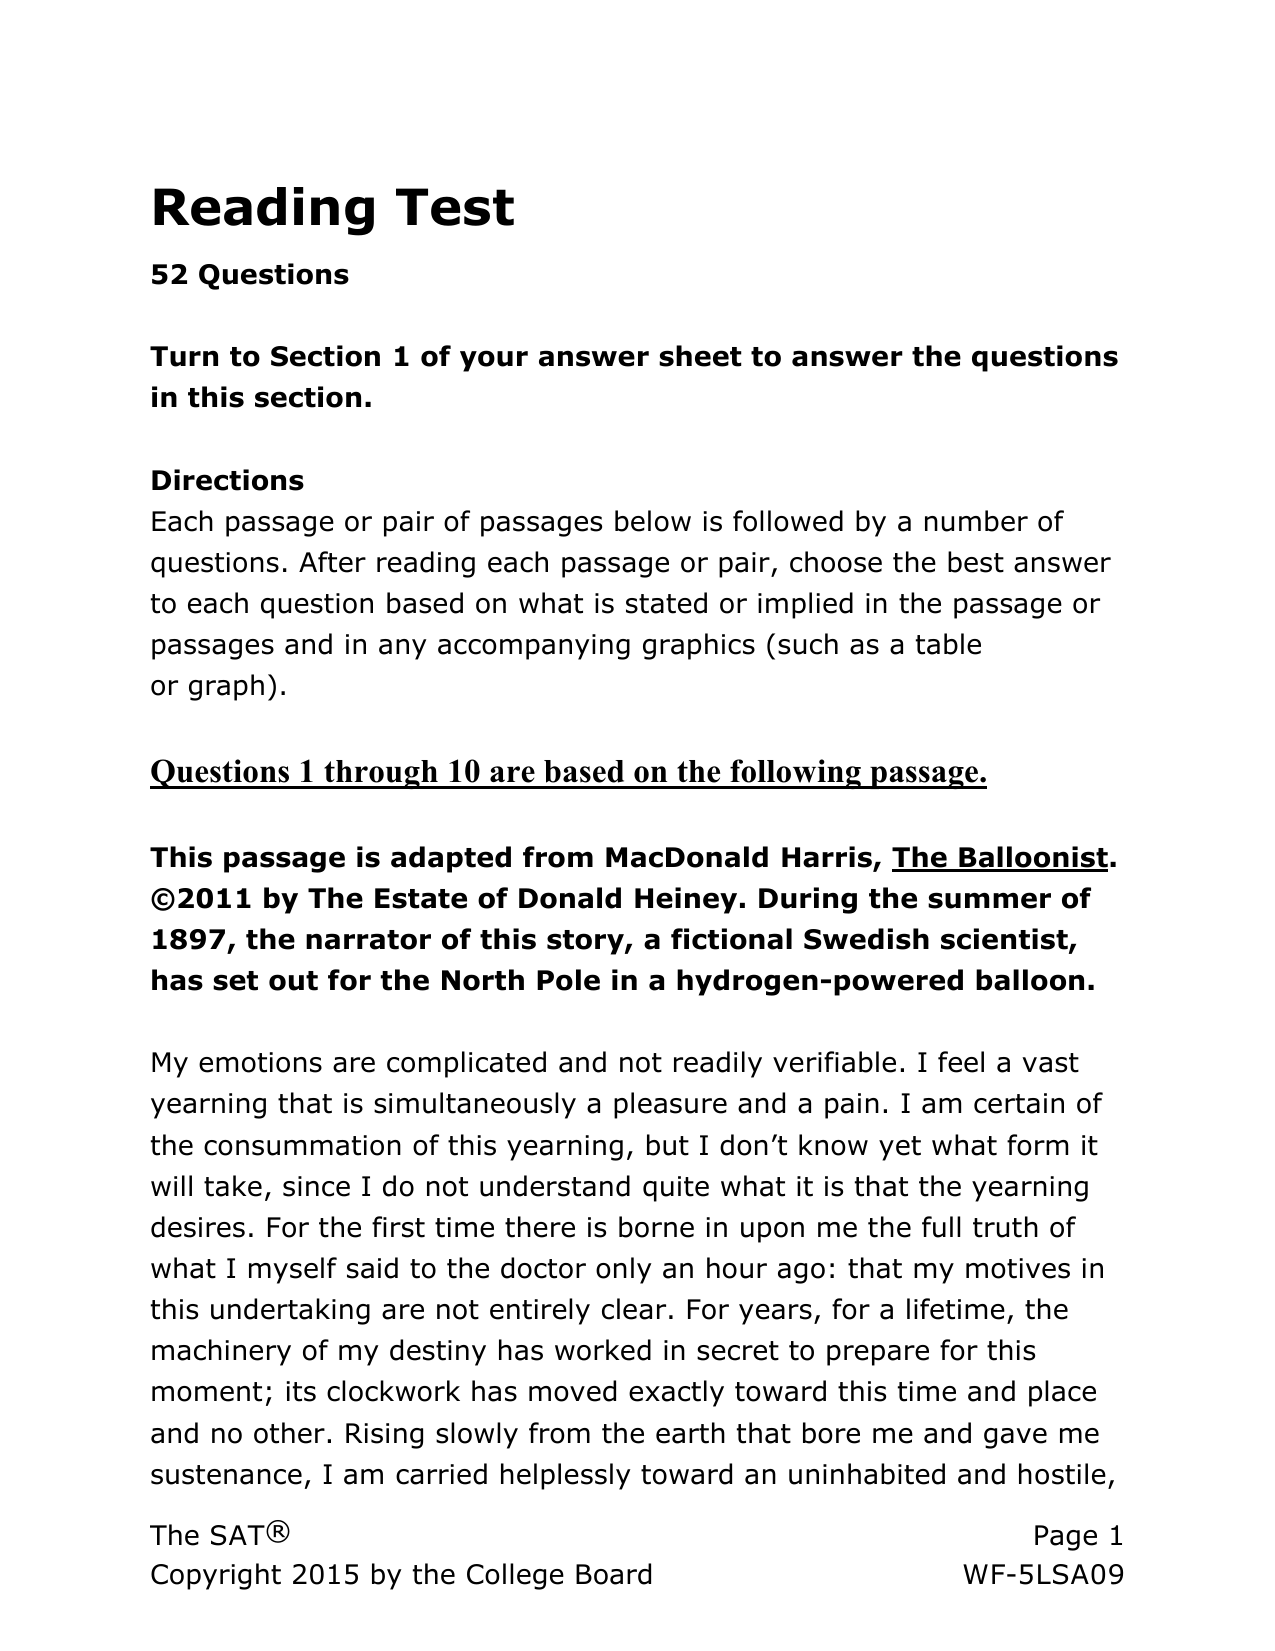 SAT Practice Reading Test 4 for Assistive